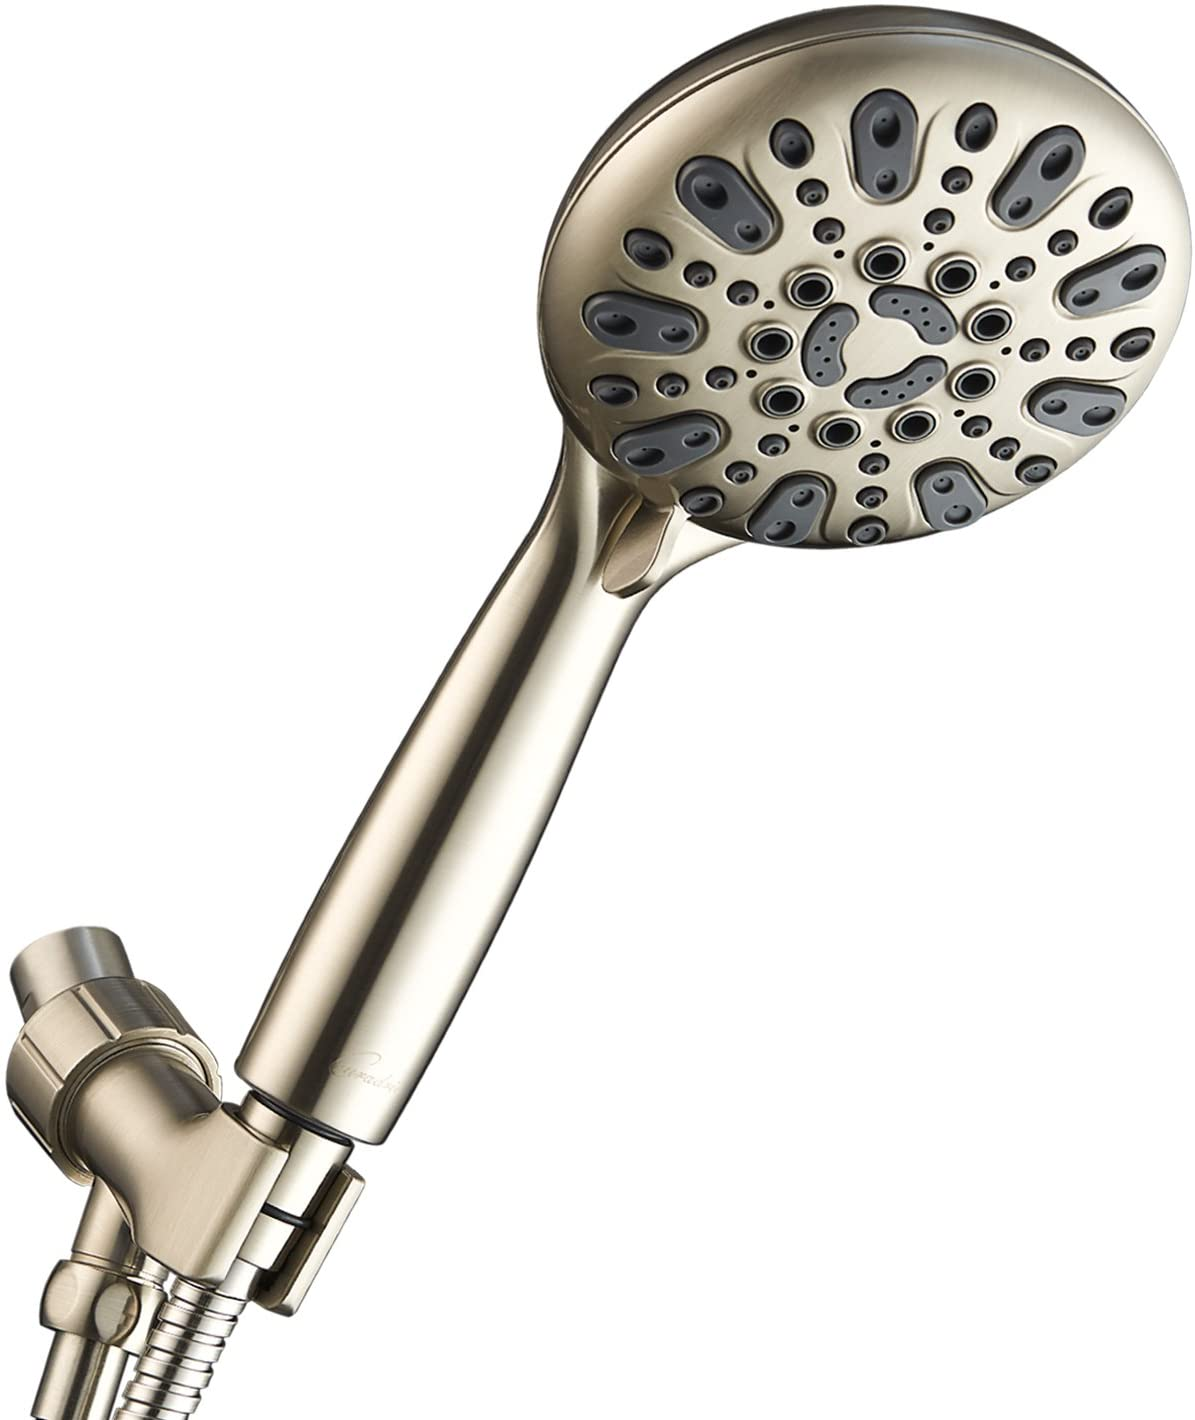 Couradric Handheld Shower Head, 6 Spray Setting High Pressure Shower Head with Brass Swivel Ball Bracket and Extra Long Stainless Steel Hose, Brushed Nickel, 5""